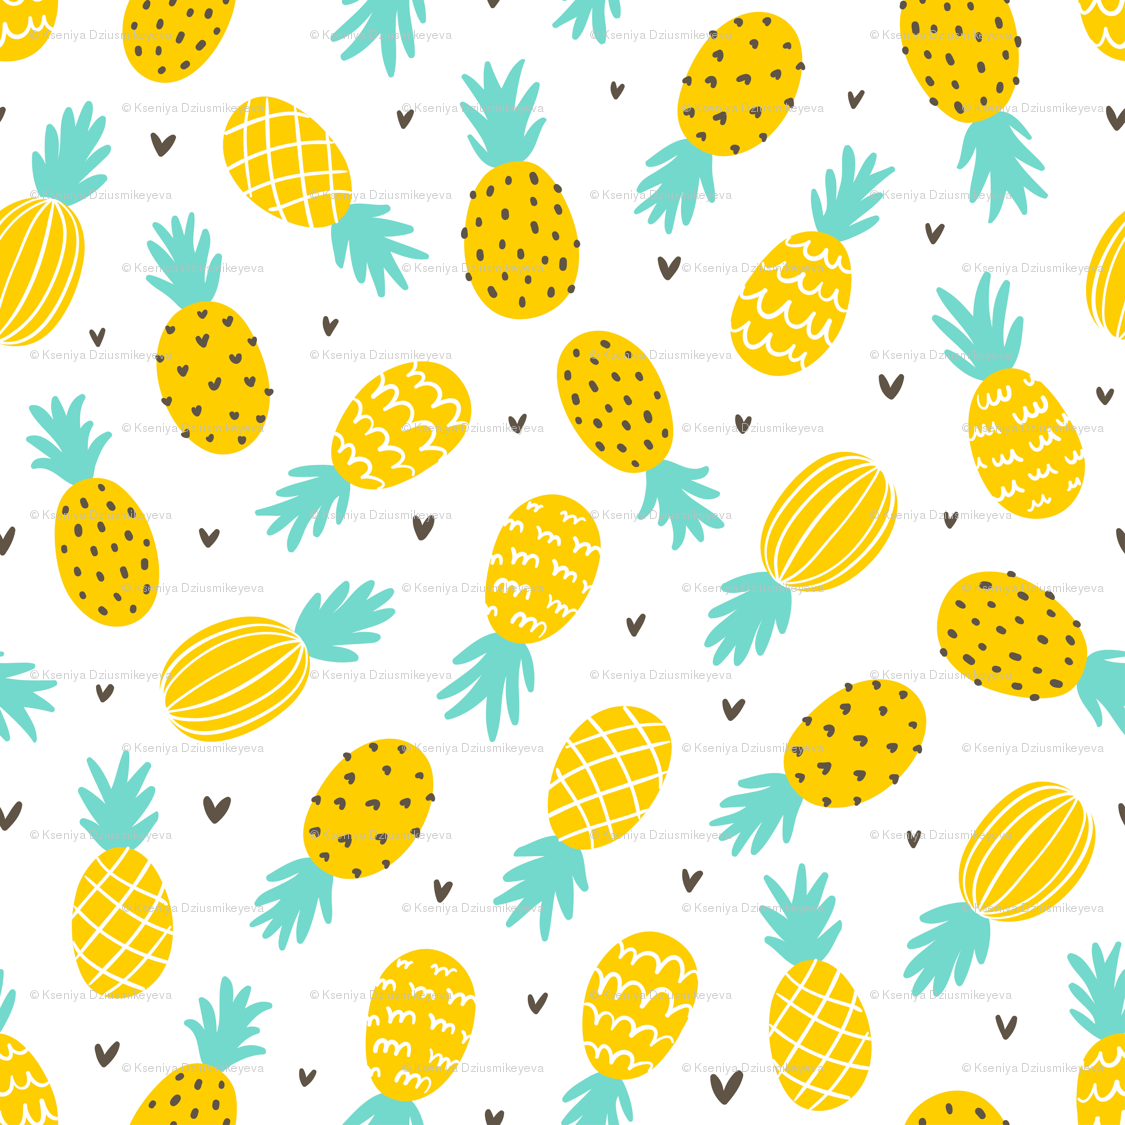 Pineapple Hearts Large Scale Wallpaper